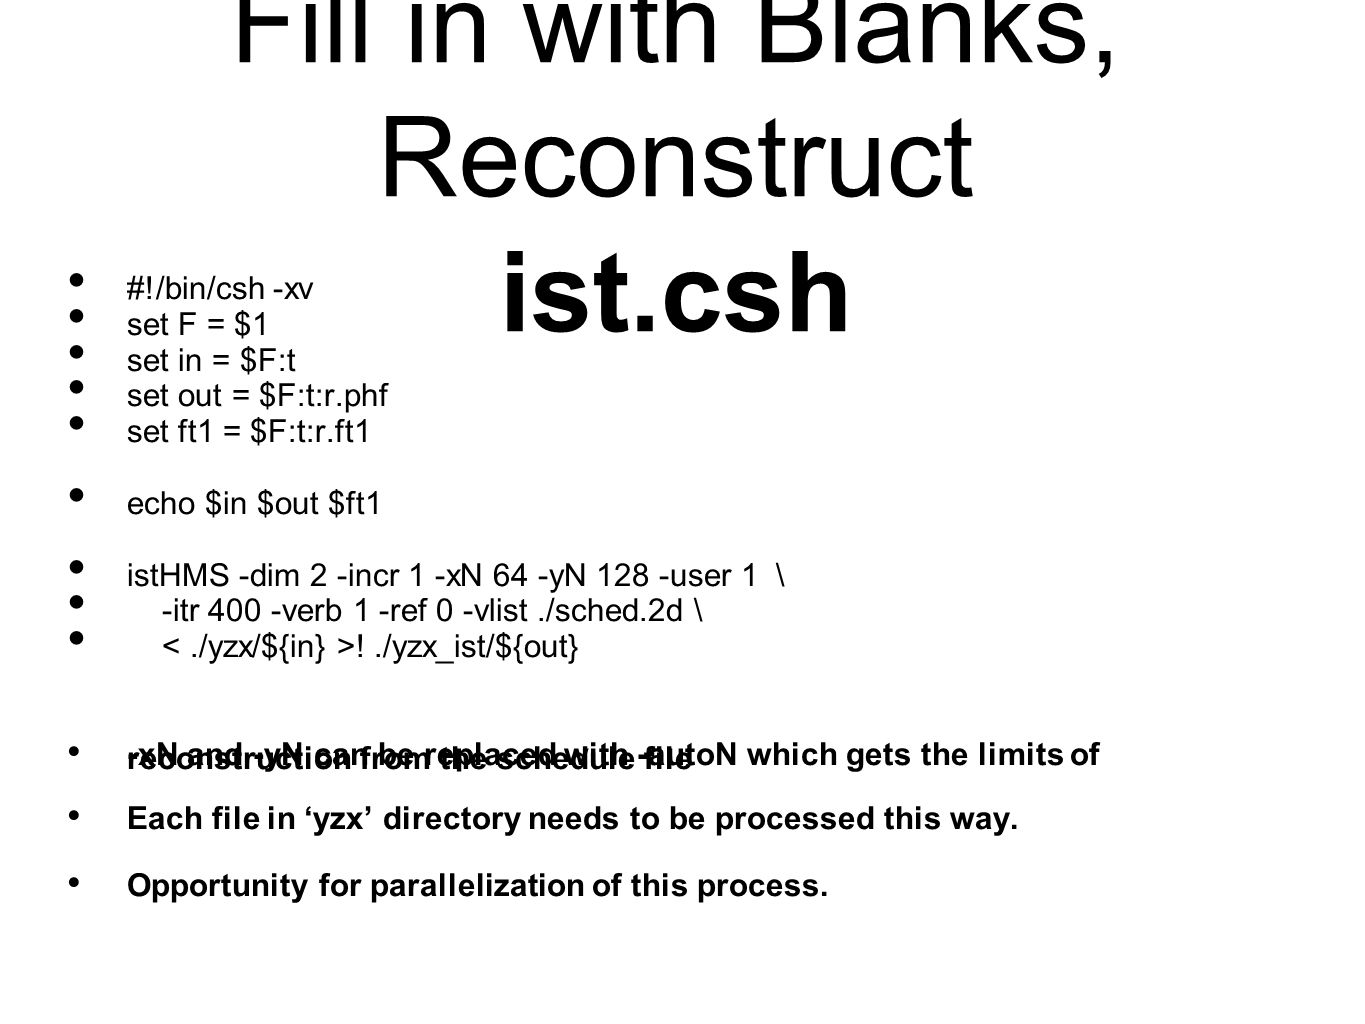 Fill in with Blanks, Reconstruct ist.csh #!/bin/csh -xv set F = $1 set in = $F:t set out = $F:t:r.phf set ft1 = $F:t:r.ft1 echo $in $out $ft1 istHMS -